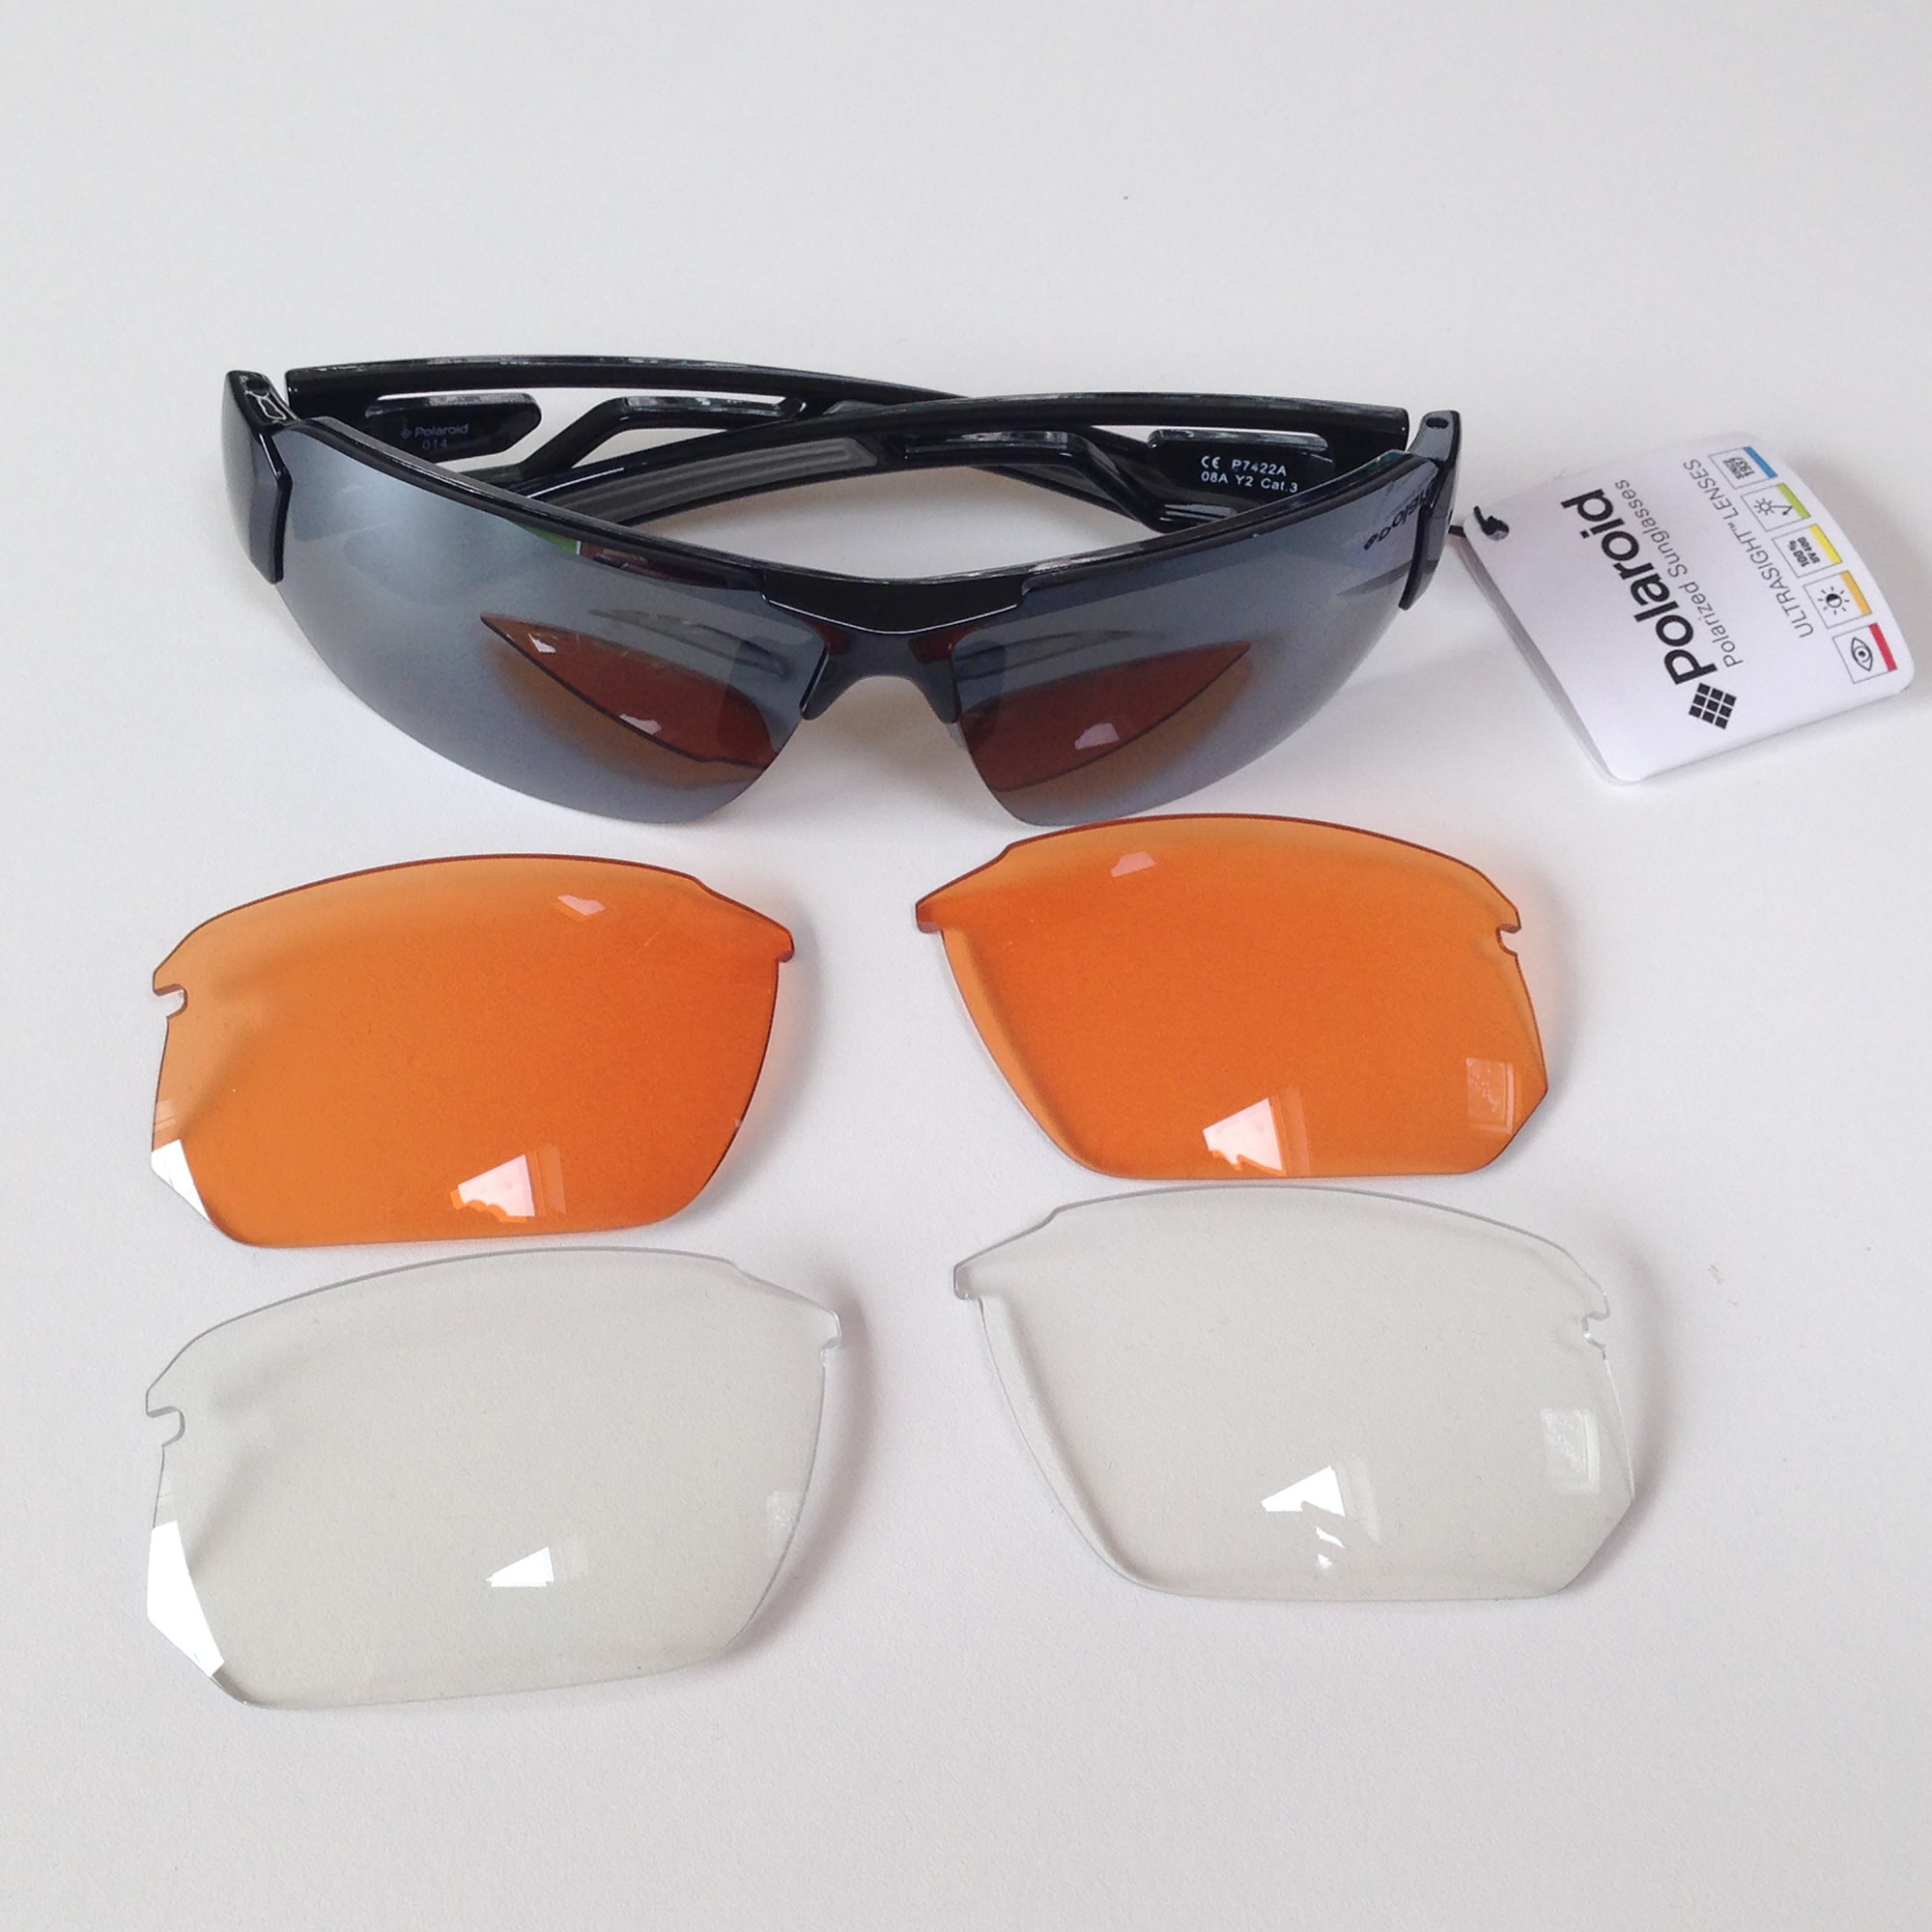 Con Occhiali Ray Ultrasight P7422 Da Polarized Lenti Sole 0wknPO